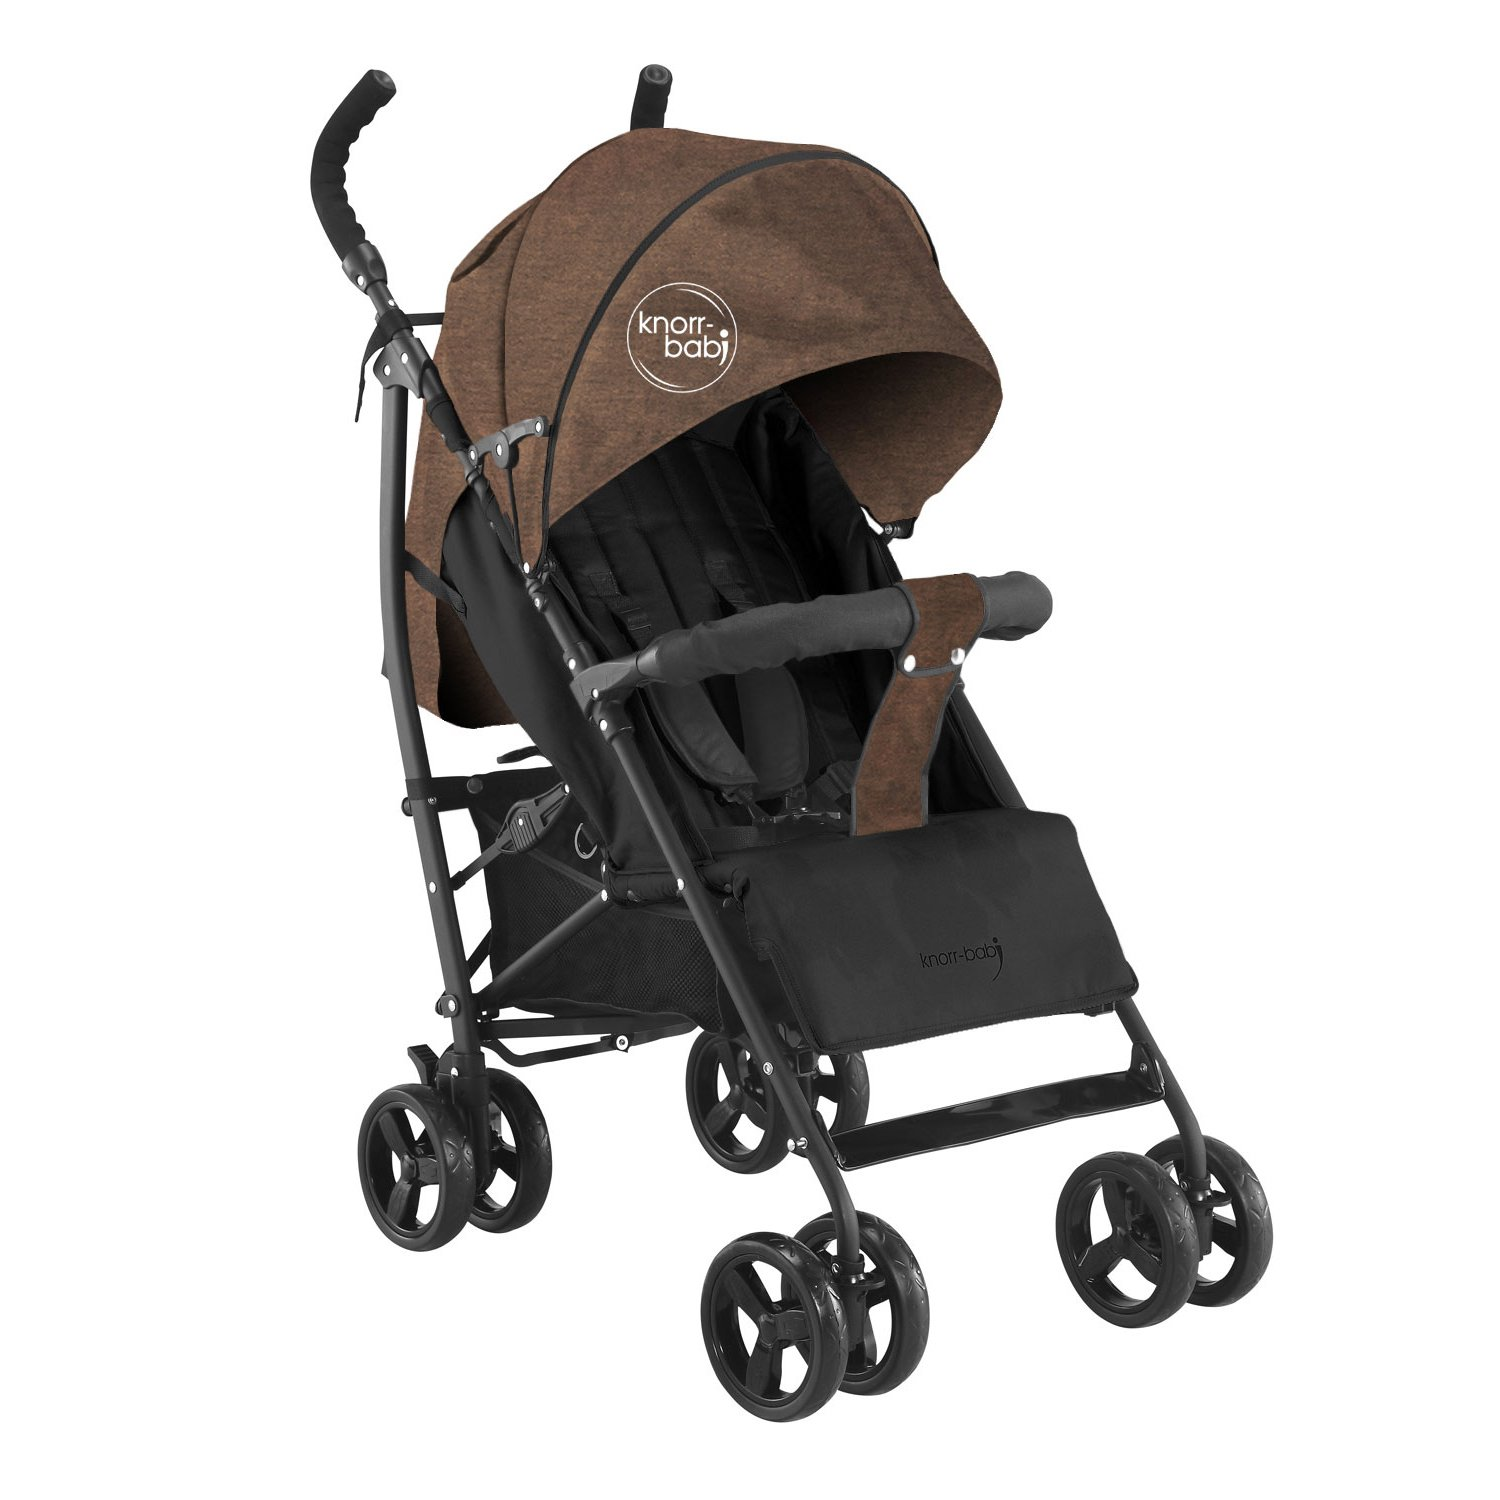 knorr-baby 848540 Buggy Styler Happy Colour, blau